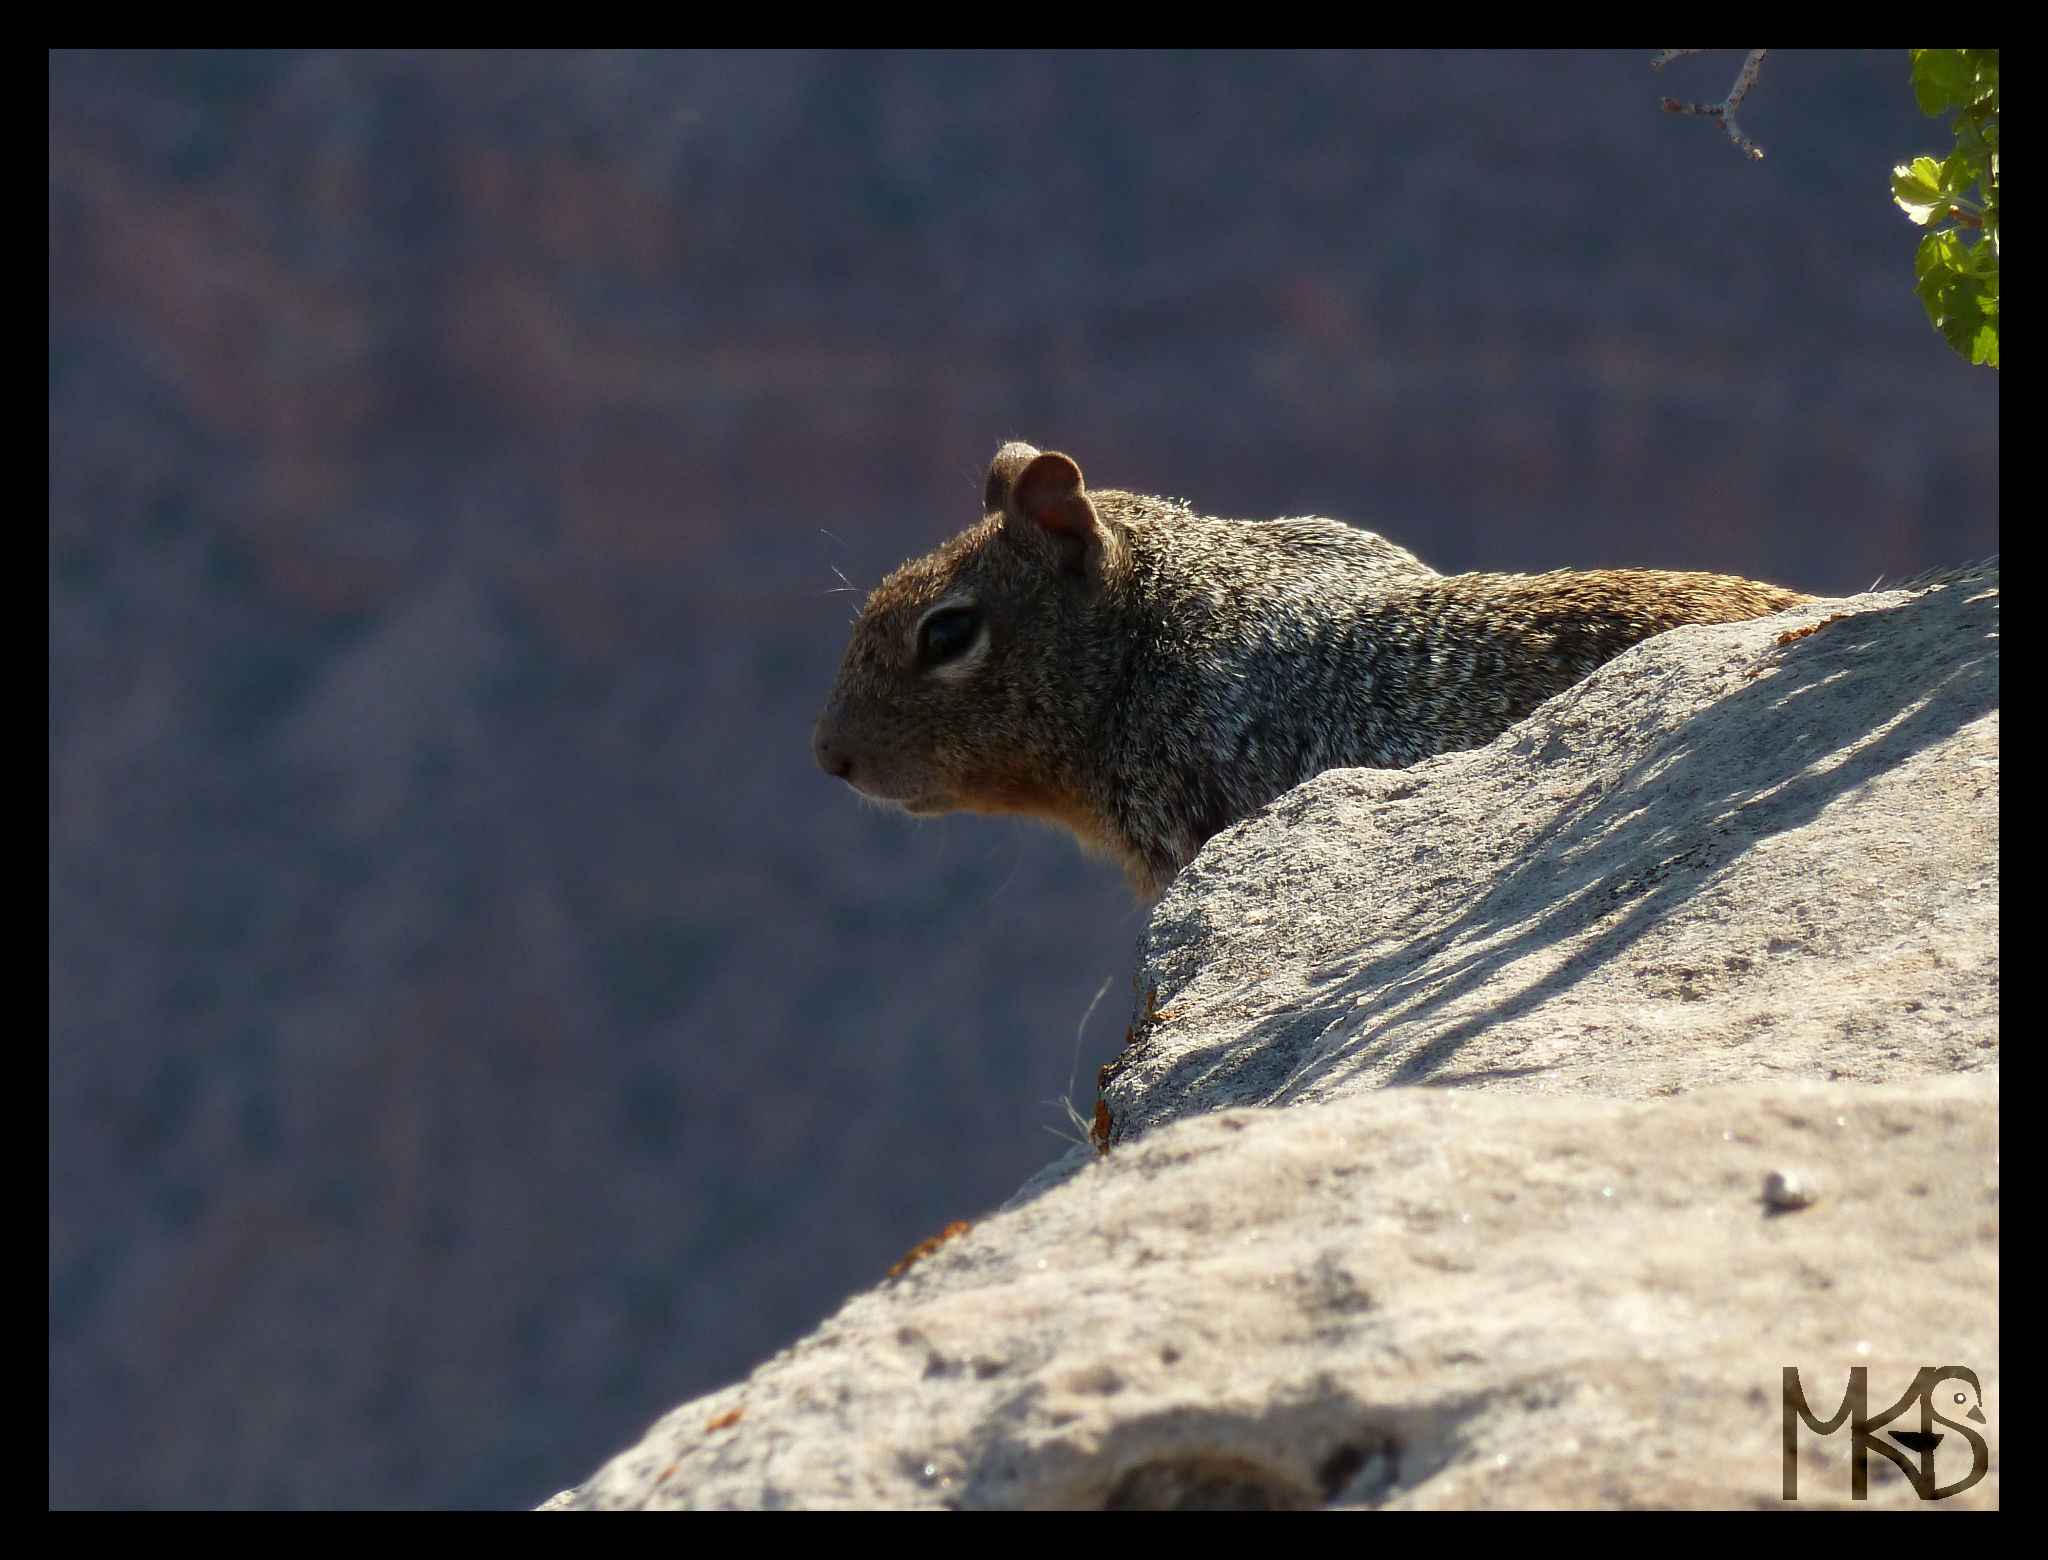 Chipmunks in Grand Canyon